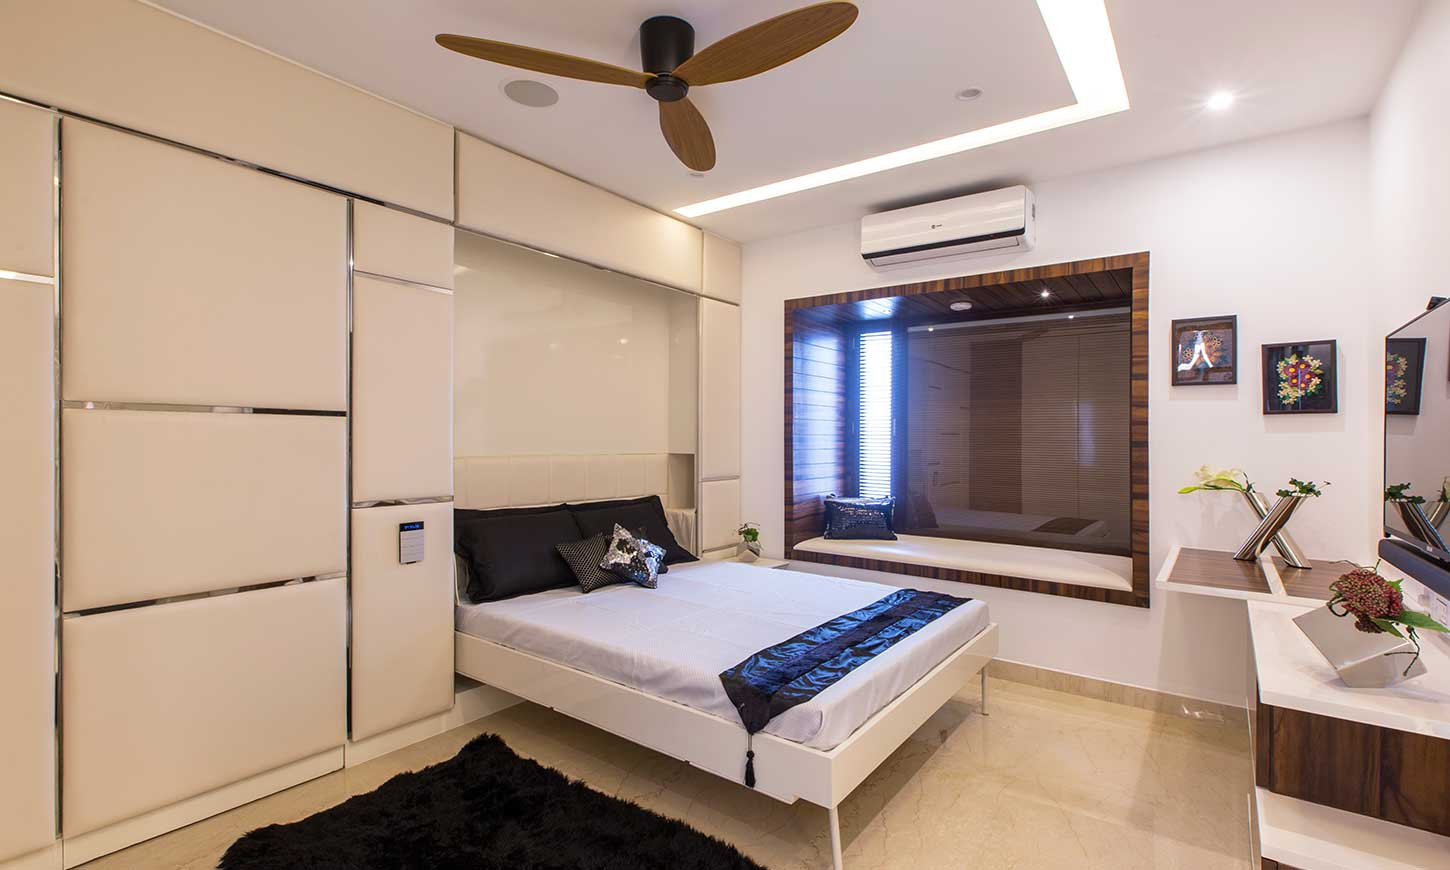 A guest bedroom designed by interior design studios in bangalore with an invisible murphy bed which saves space